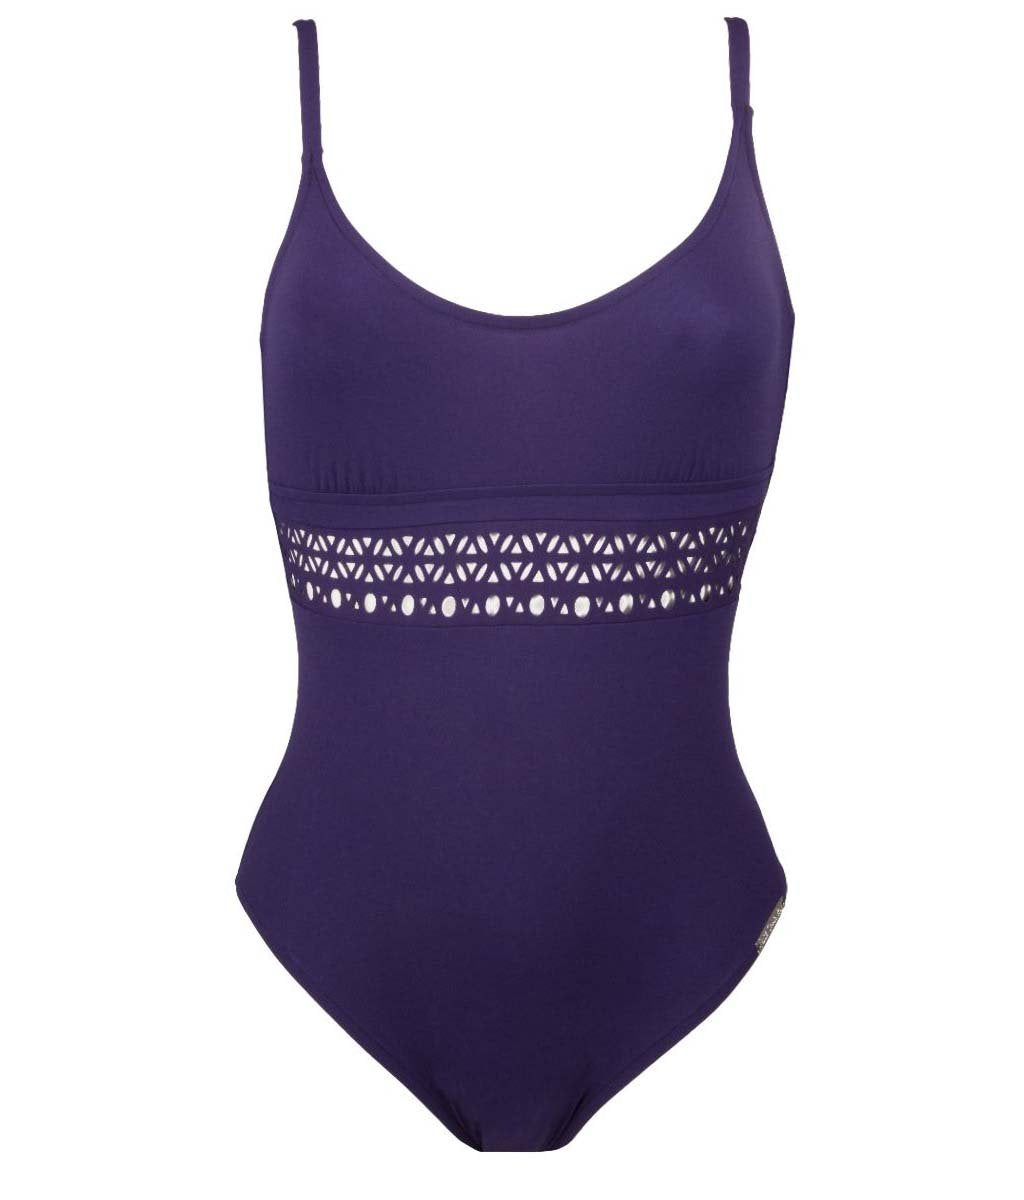 Lise Charmel 'Ajourage Couture' (Ajourage Royal) Unpadded Swimsuit - Sandra Dee - Product Shot - Front